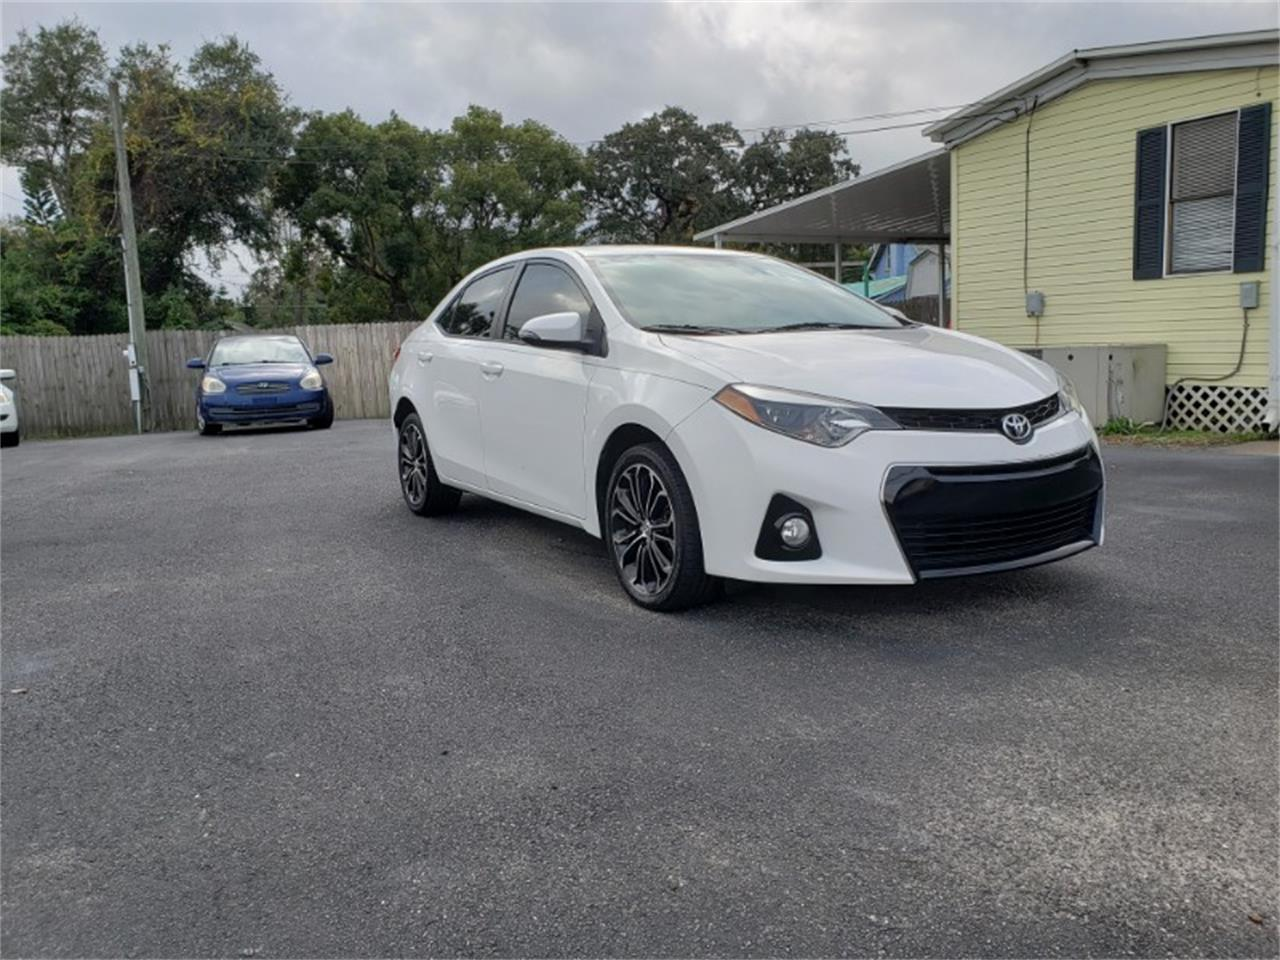 2016 Toyota Corolla (CC-1296324) for sale in Tavares, Florida